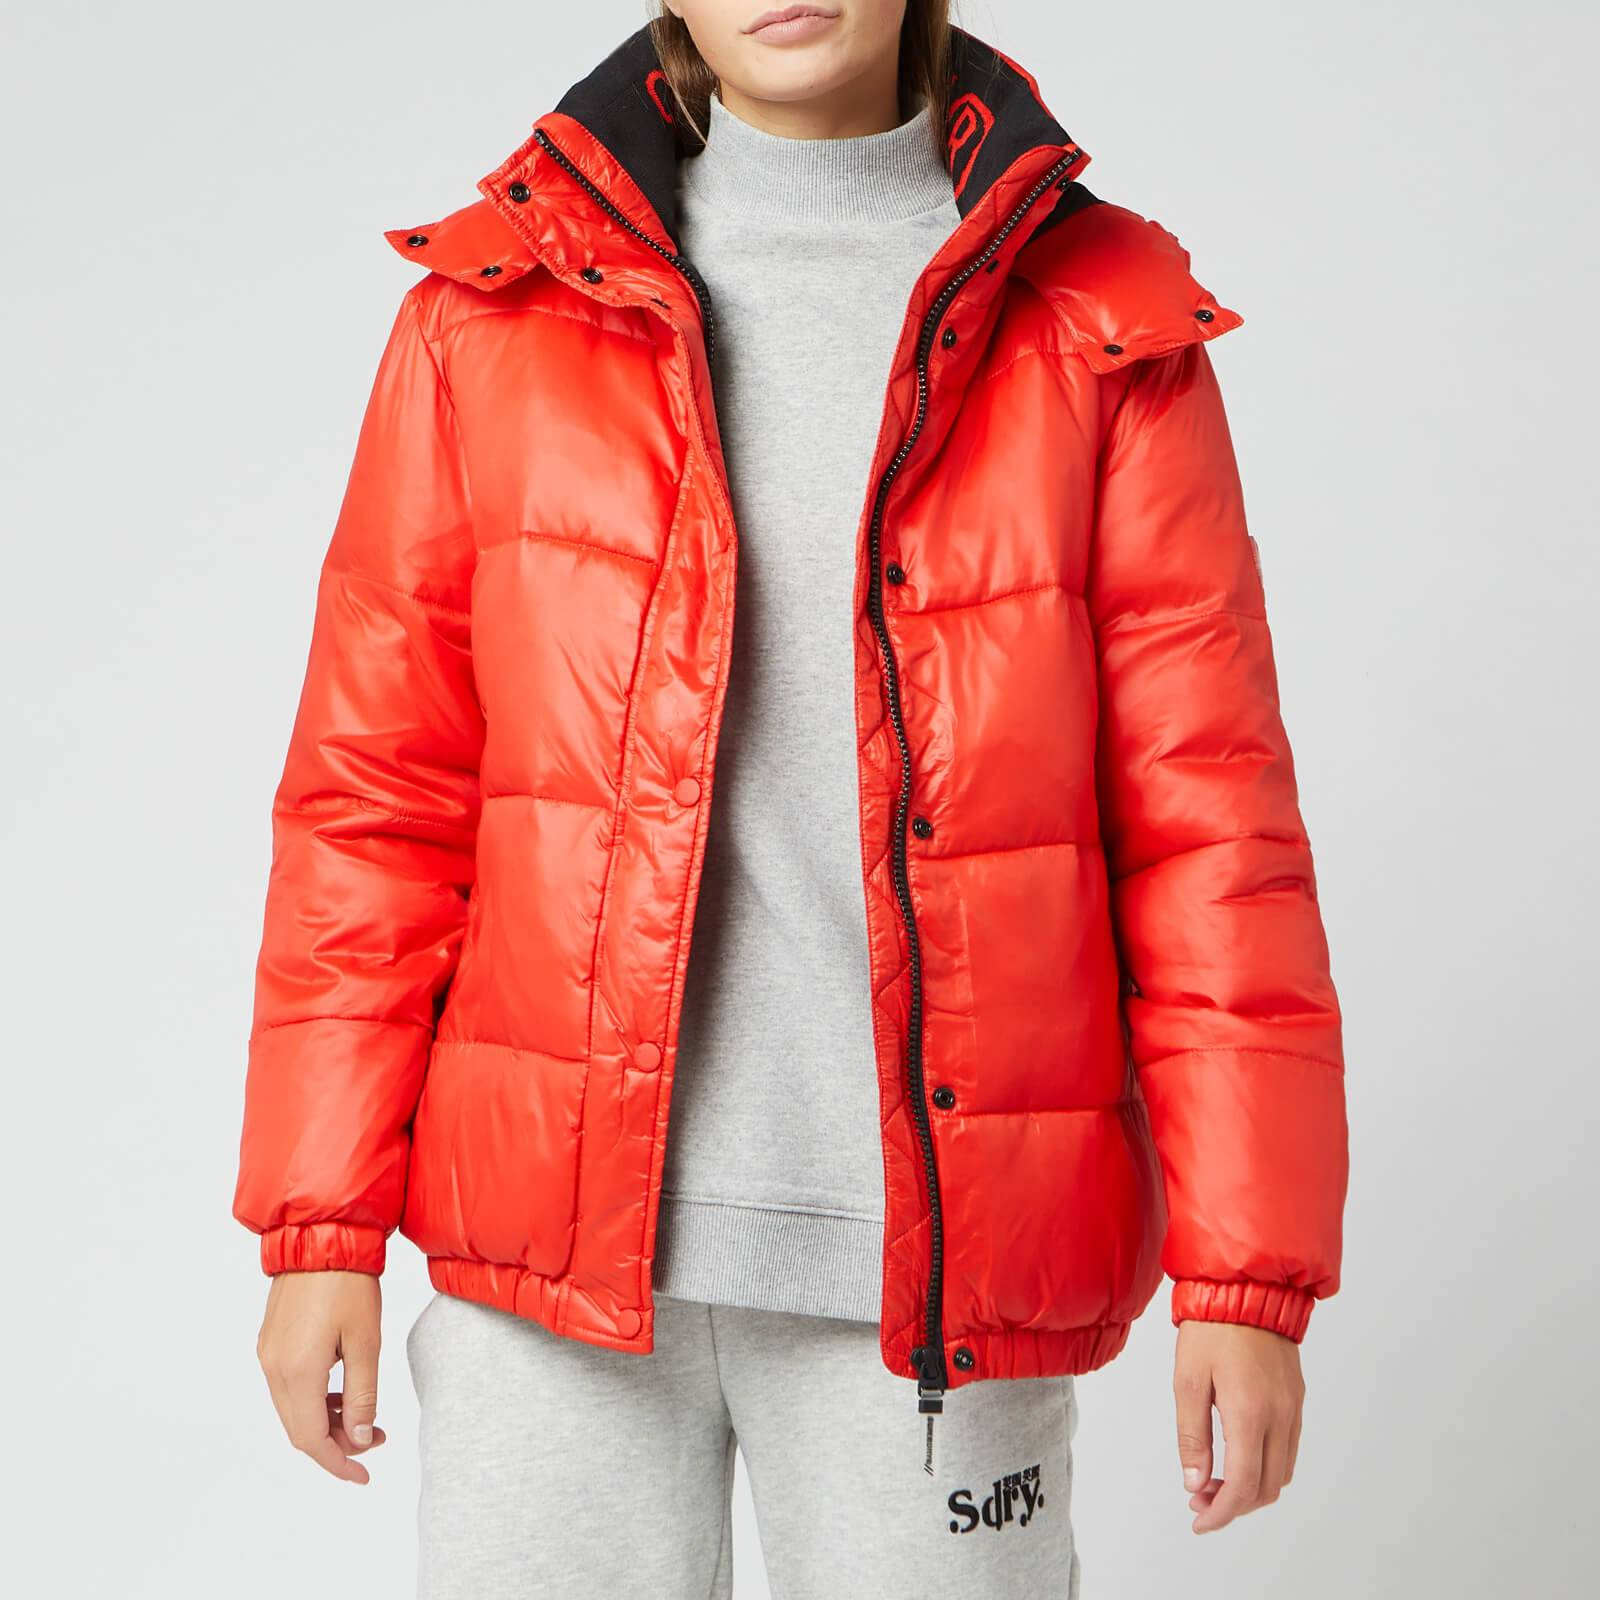 Superdry Women's Astrid Puffer Jacket - Apple Red - UK 12